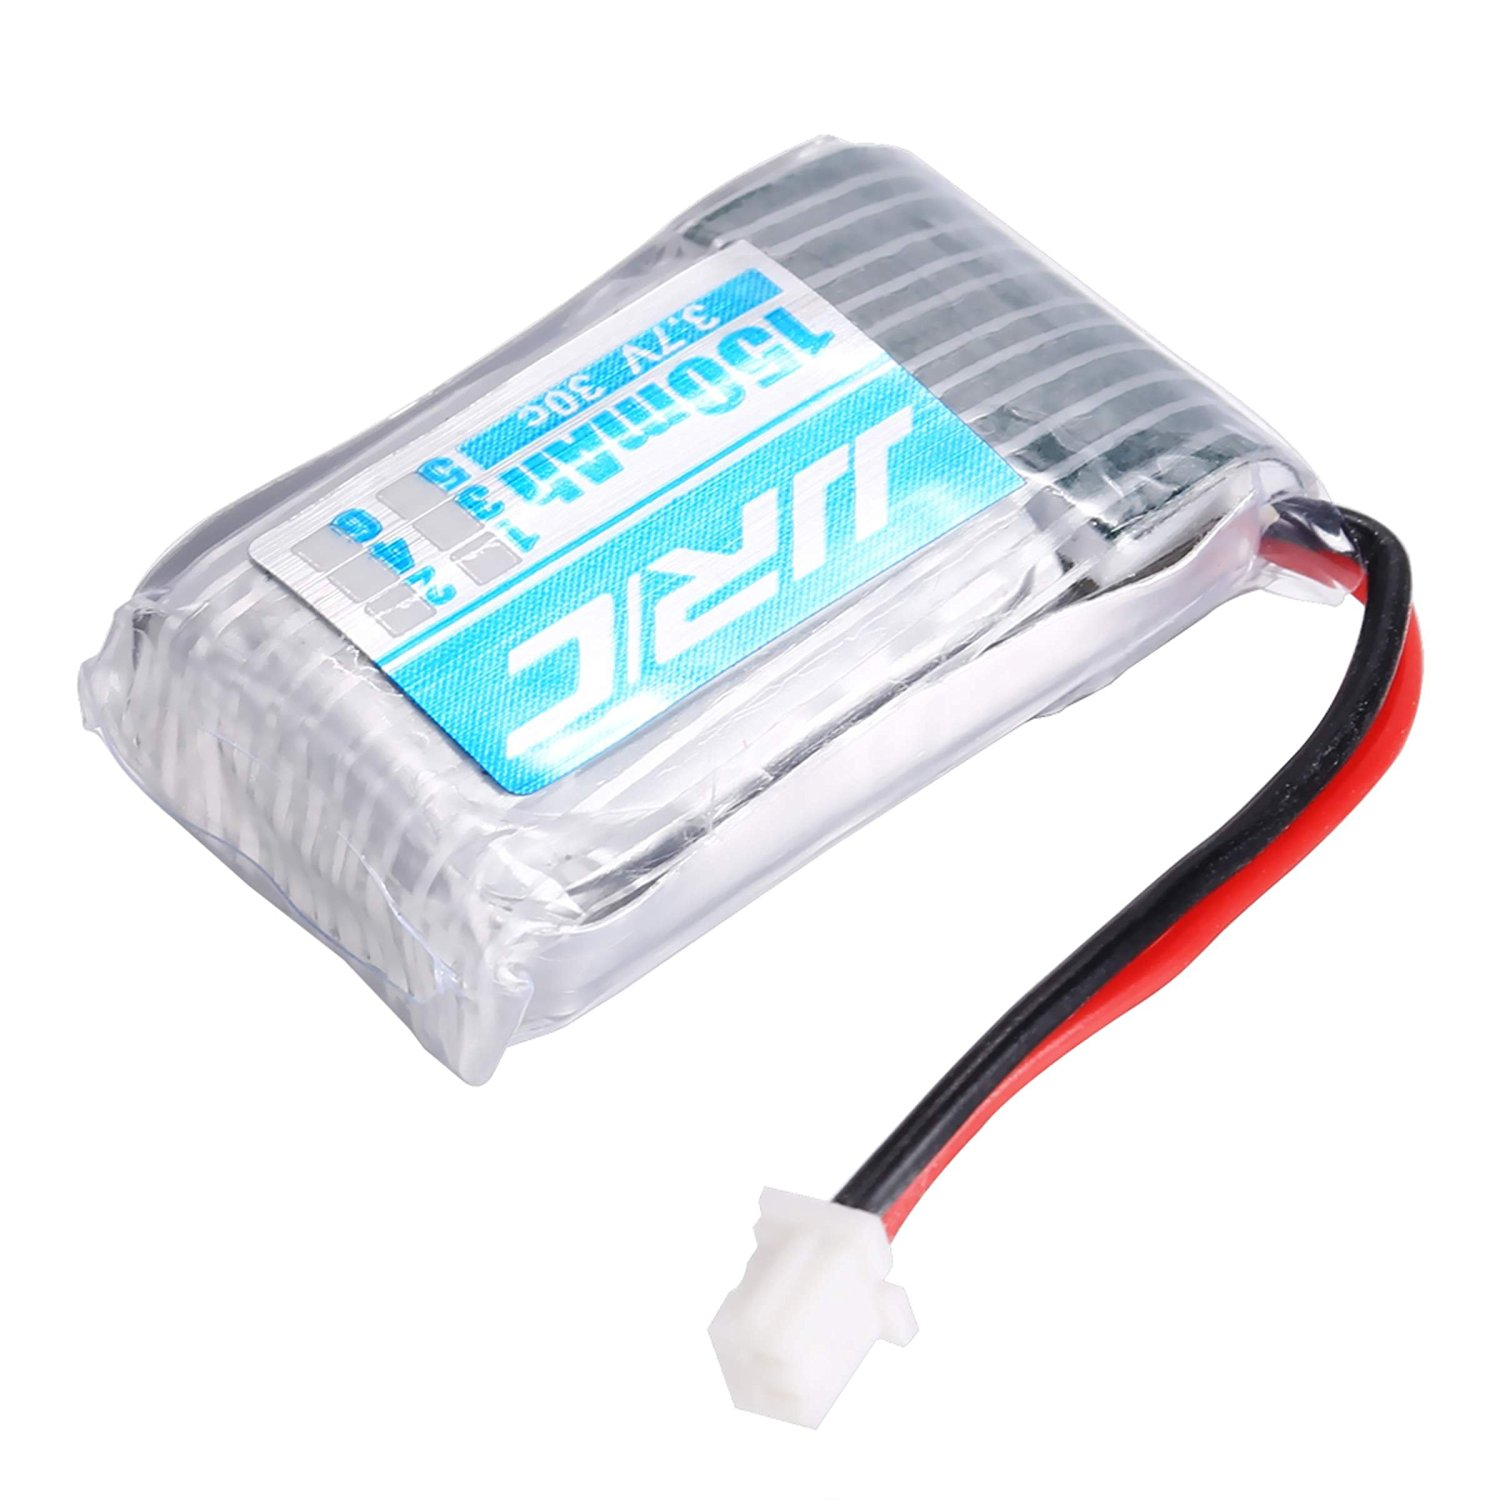 3 7V 150mAh 30C Li po font b Battery b font for JJRC H20 RC Hexacopter